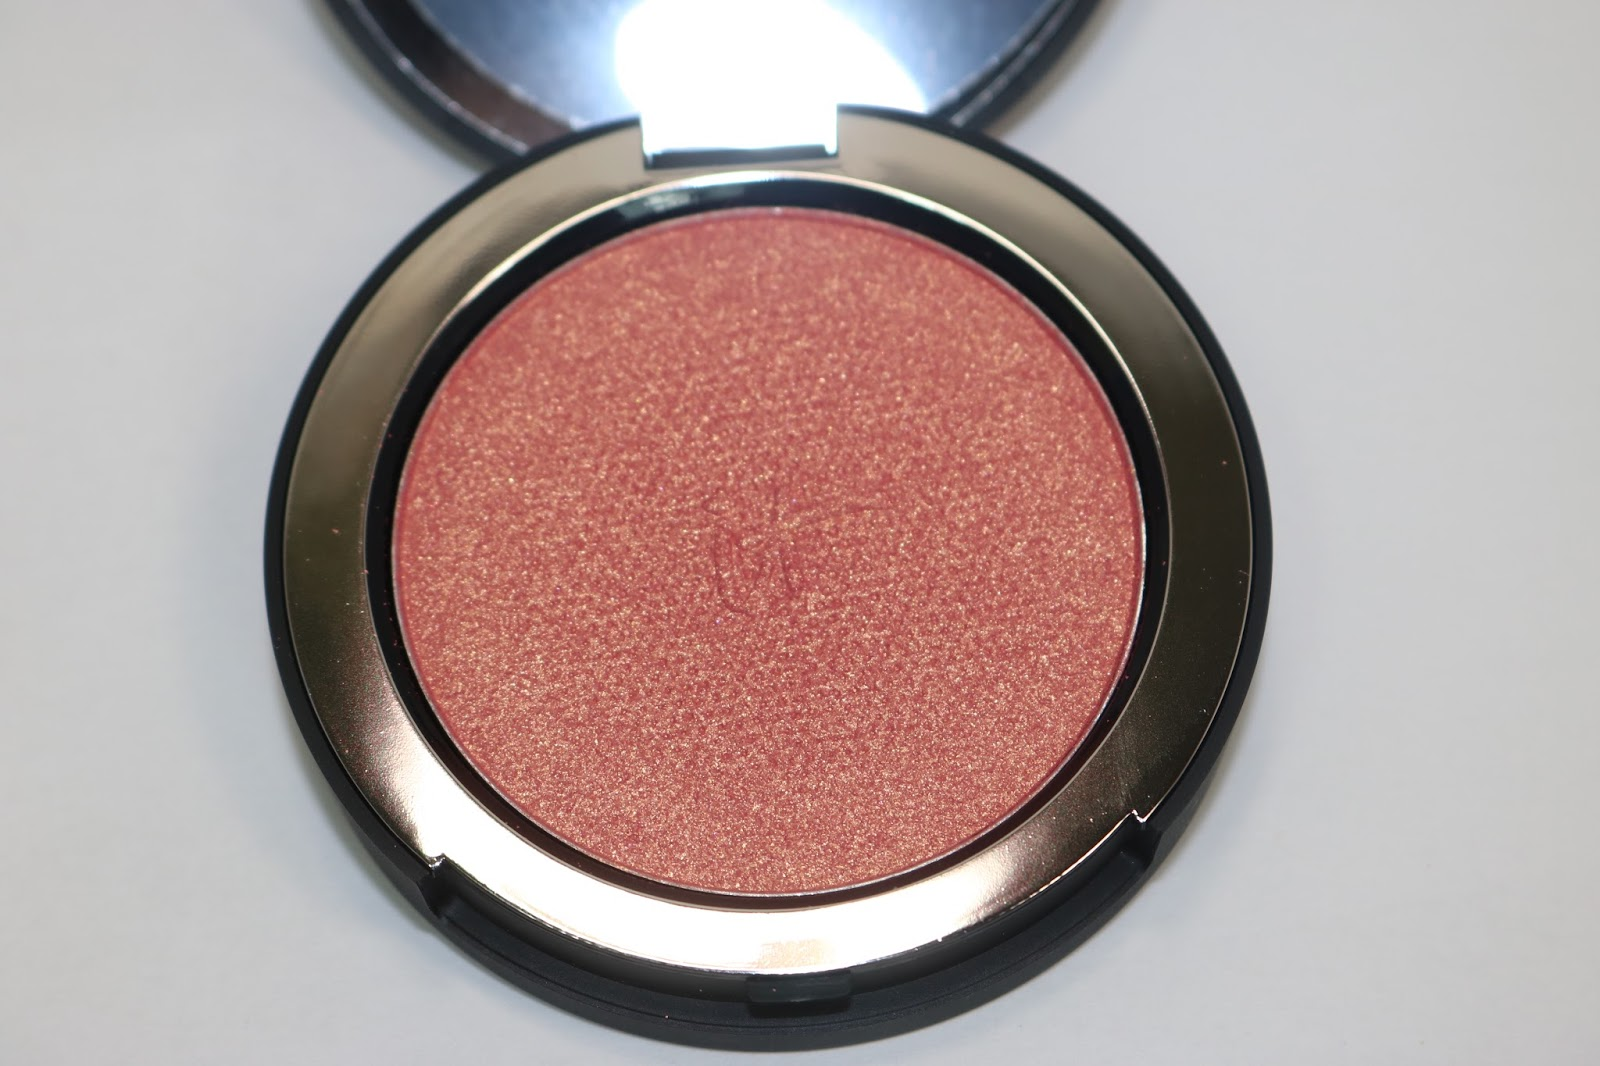 IT Cosmetics Bye Bye Pores Blush in Sweet Cheeks